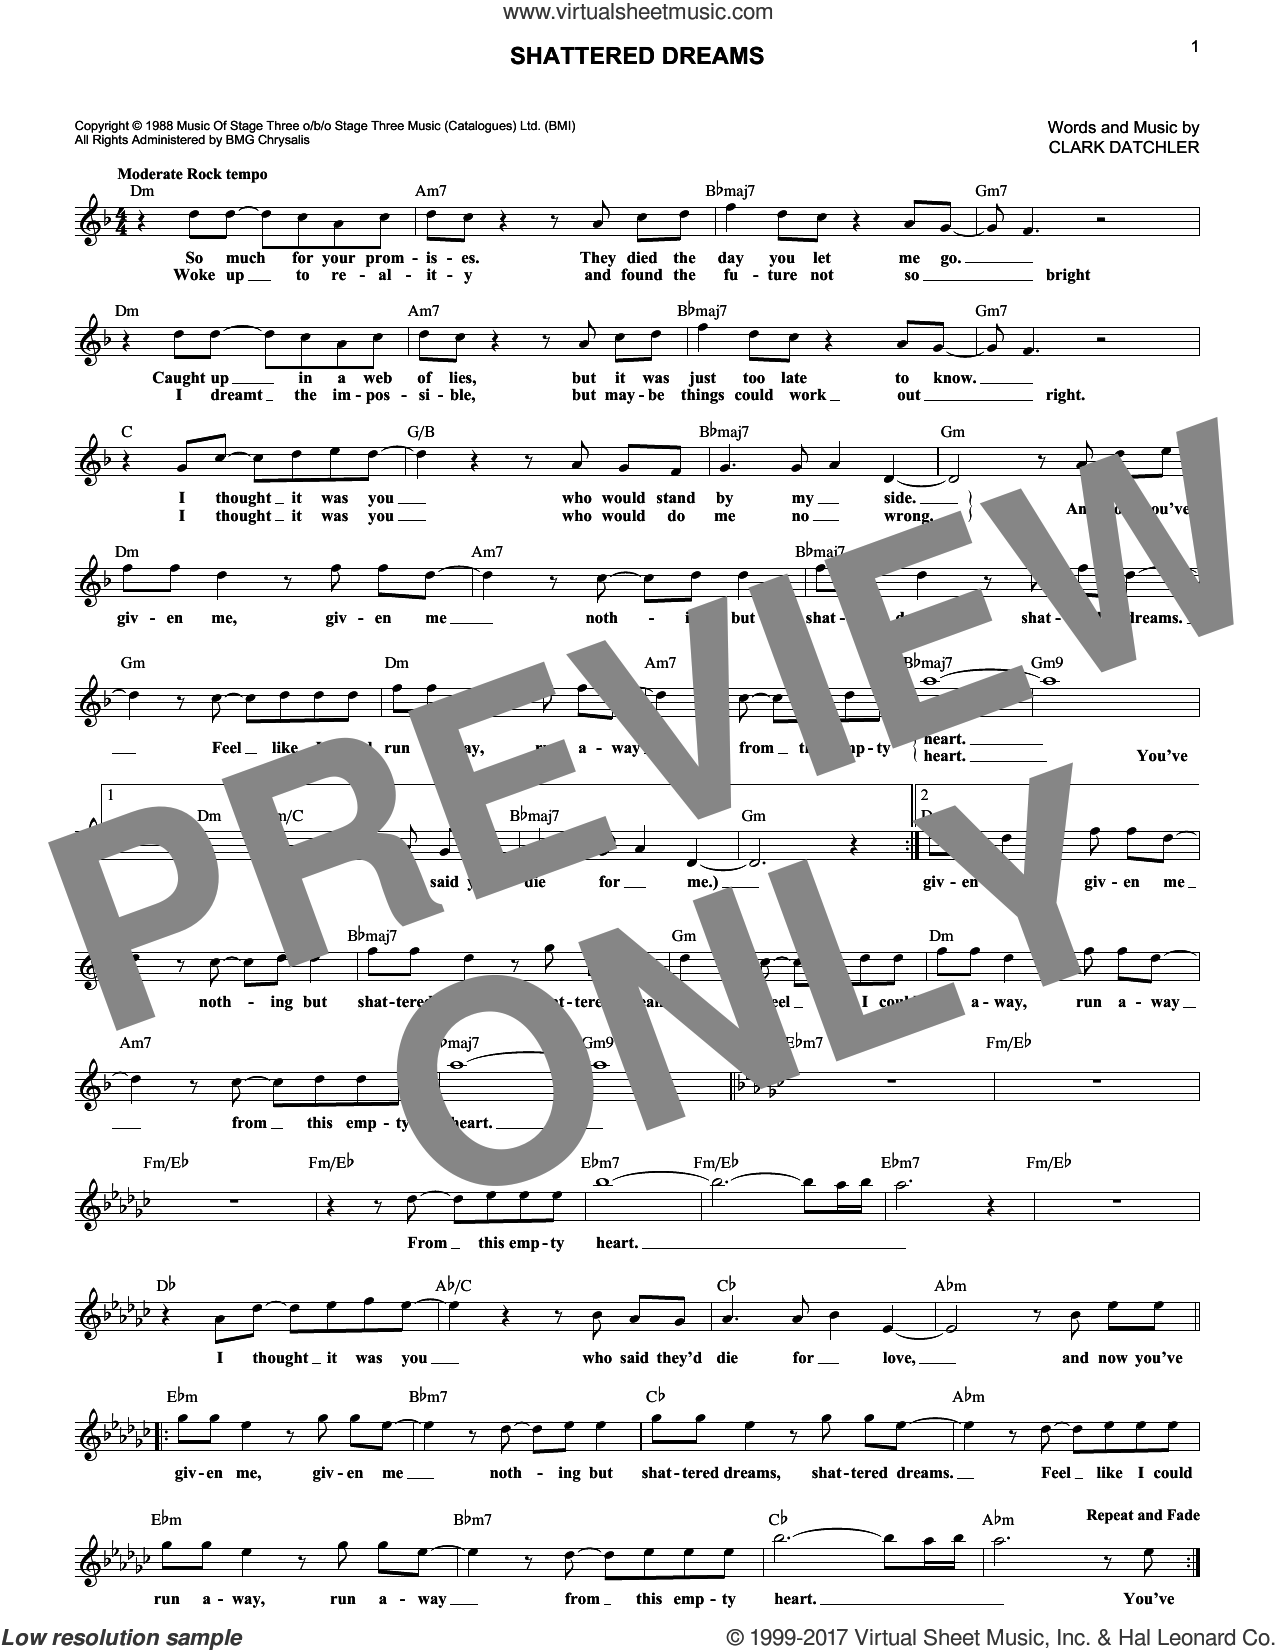 Shattered Dreams sheet music for voice and other instruments (fake book) by Johnny Hates Jazz and Clark Datchler, intermediate skill level